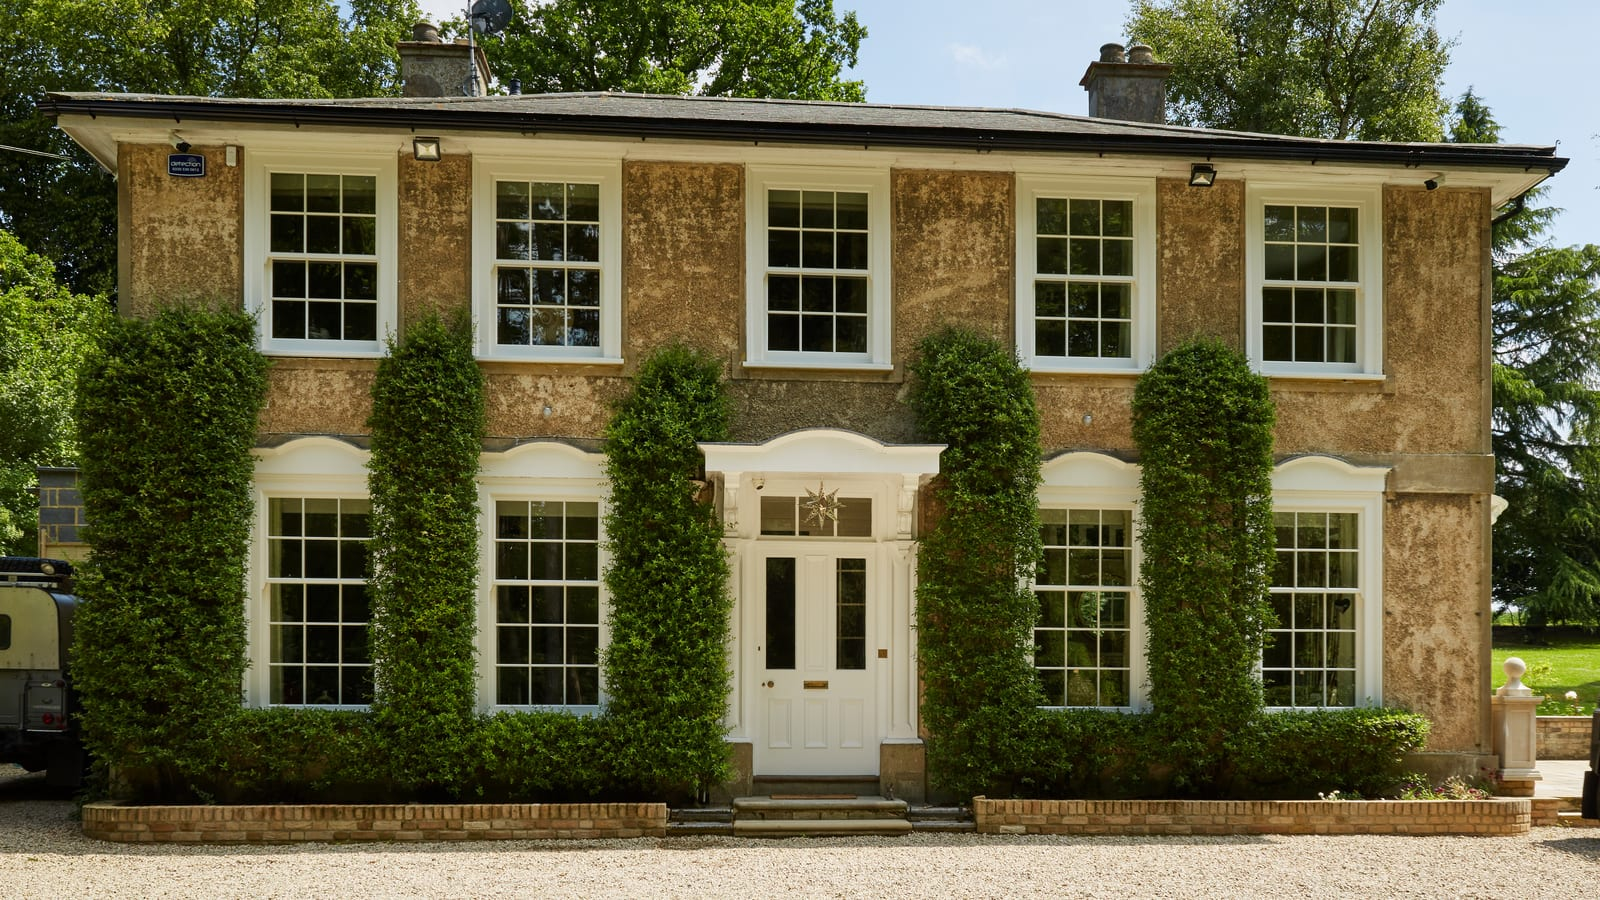 Fully renovated listed building in Ware with featuring legacy box sash windows